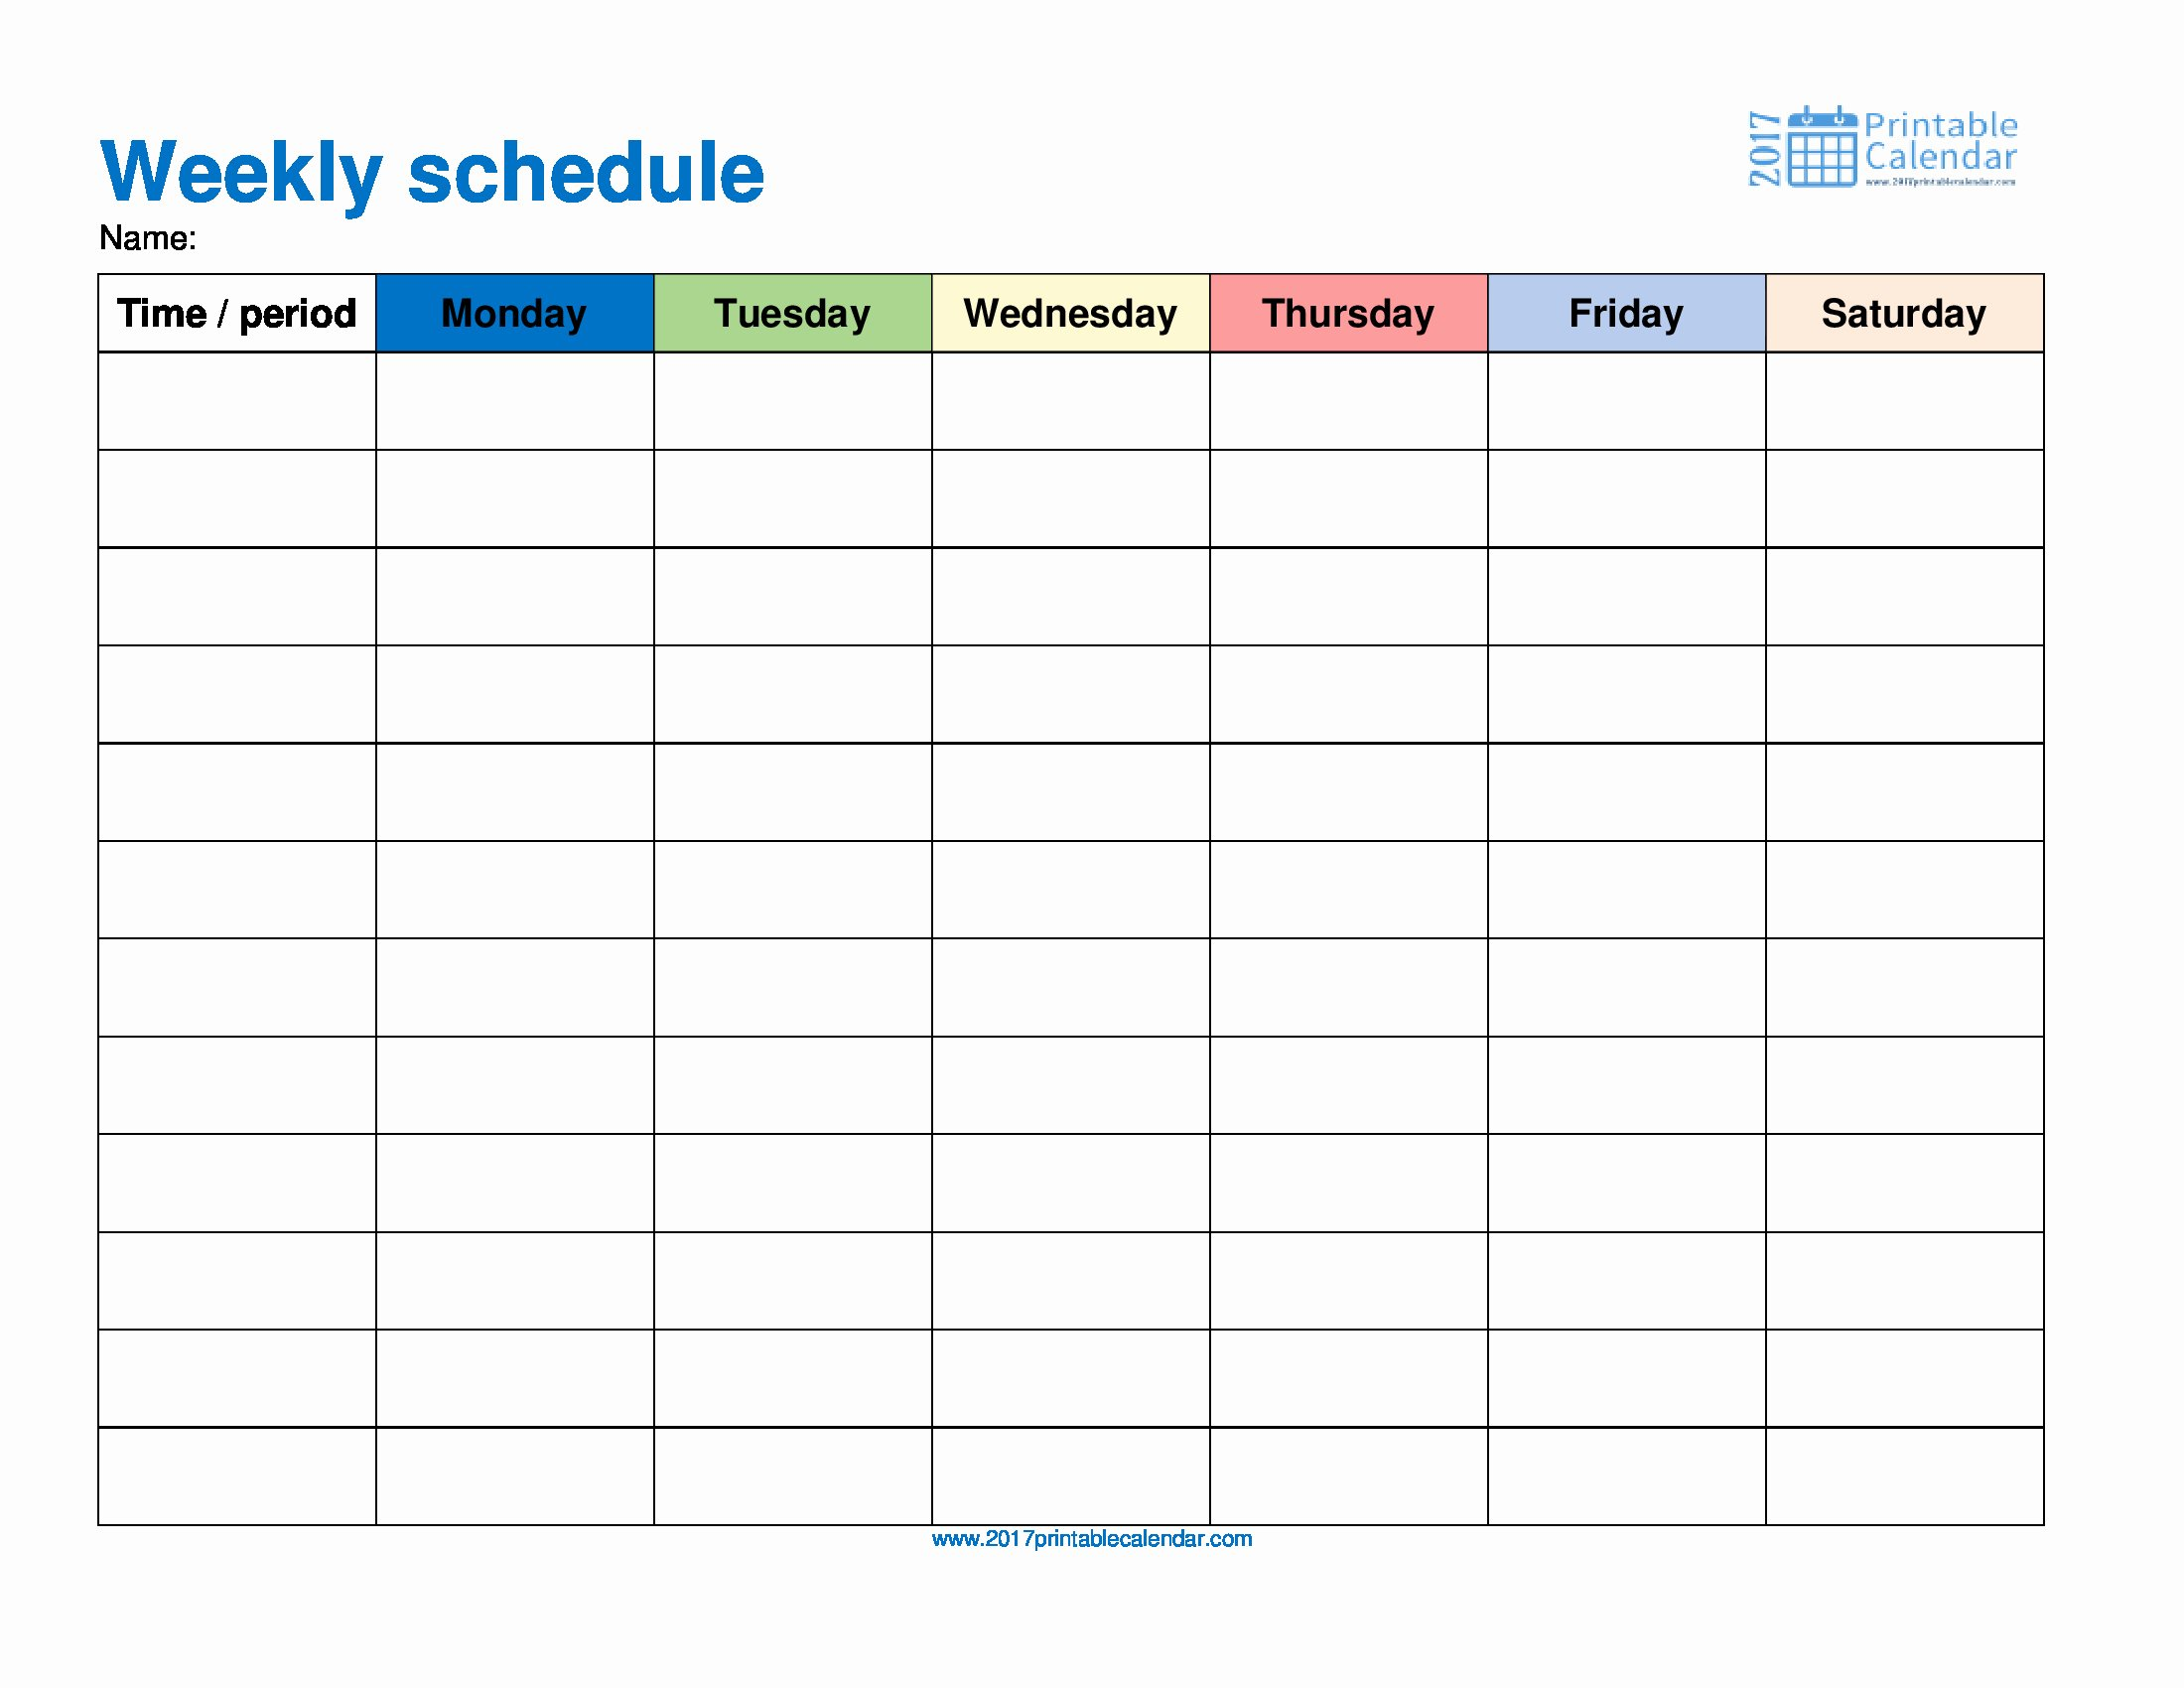 Weekly Schedule Template – 2017 Printable Calendar